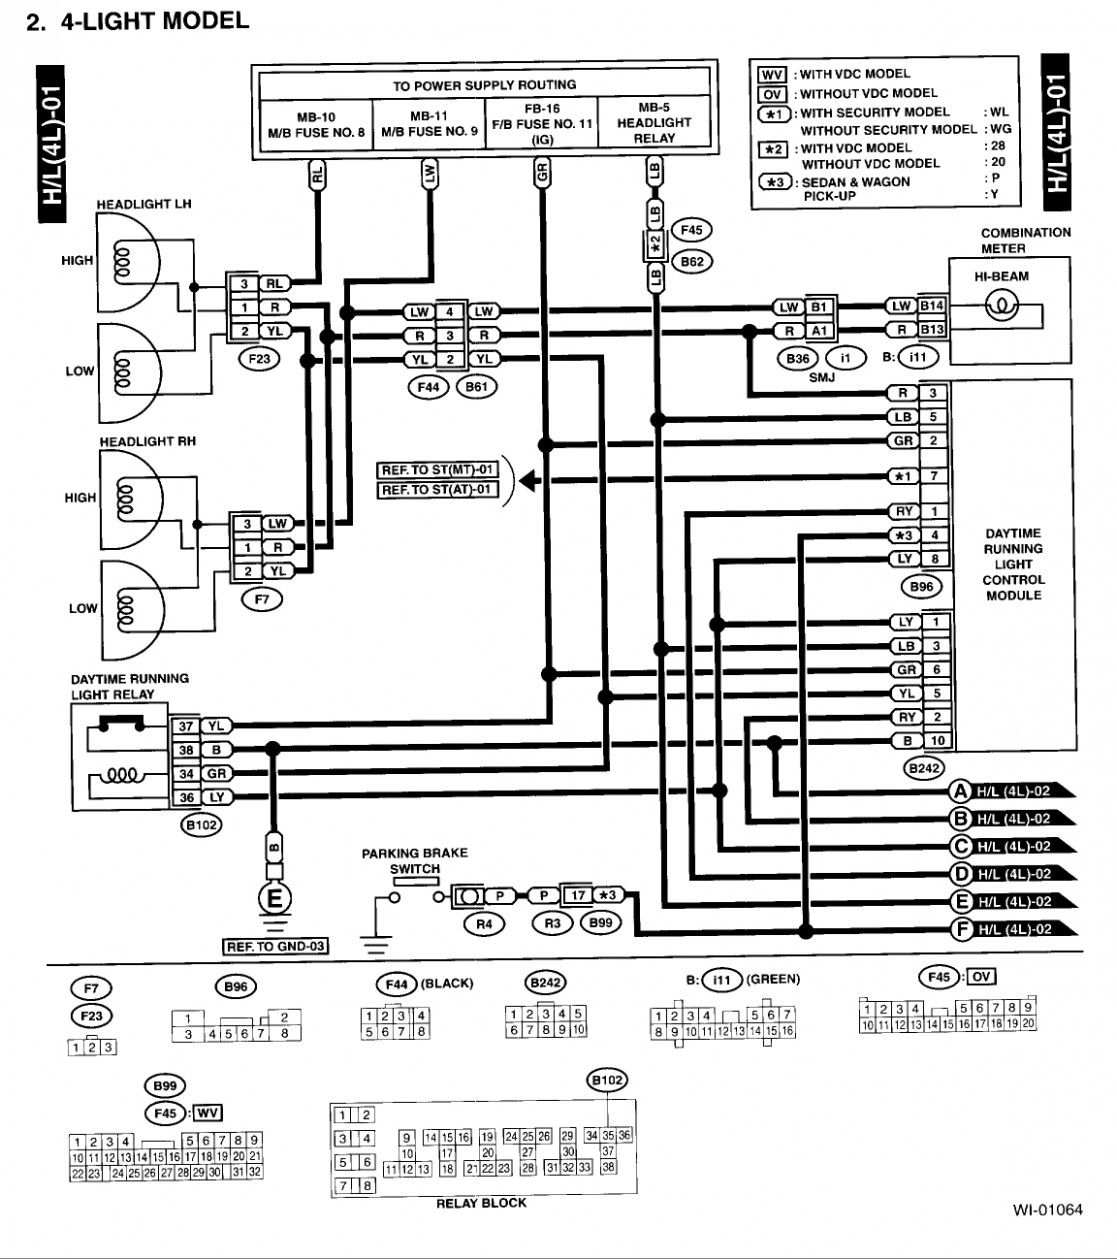 7 Subaru Legacy Engine Diagram di 2020Pinterest